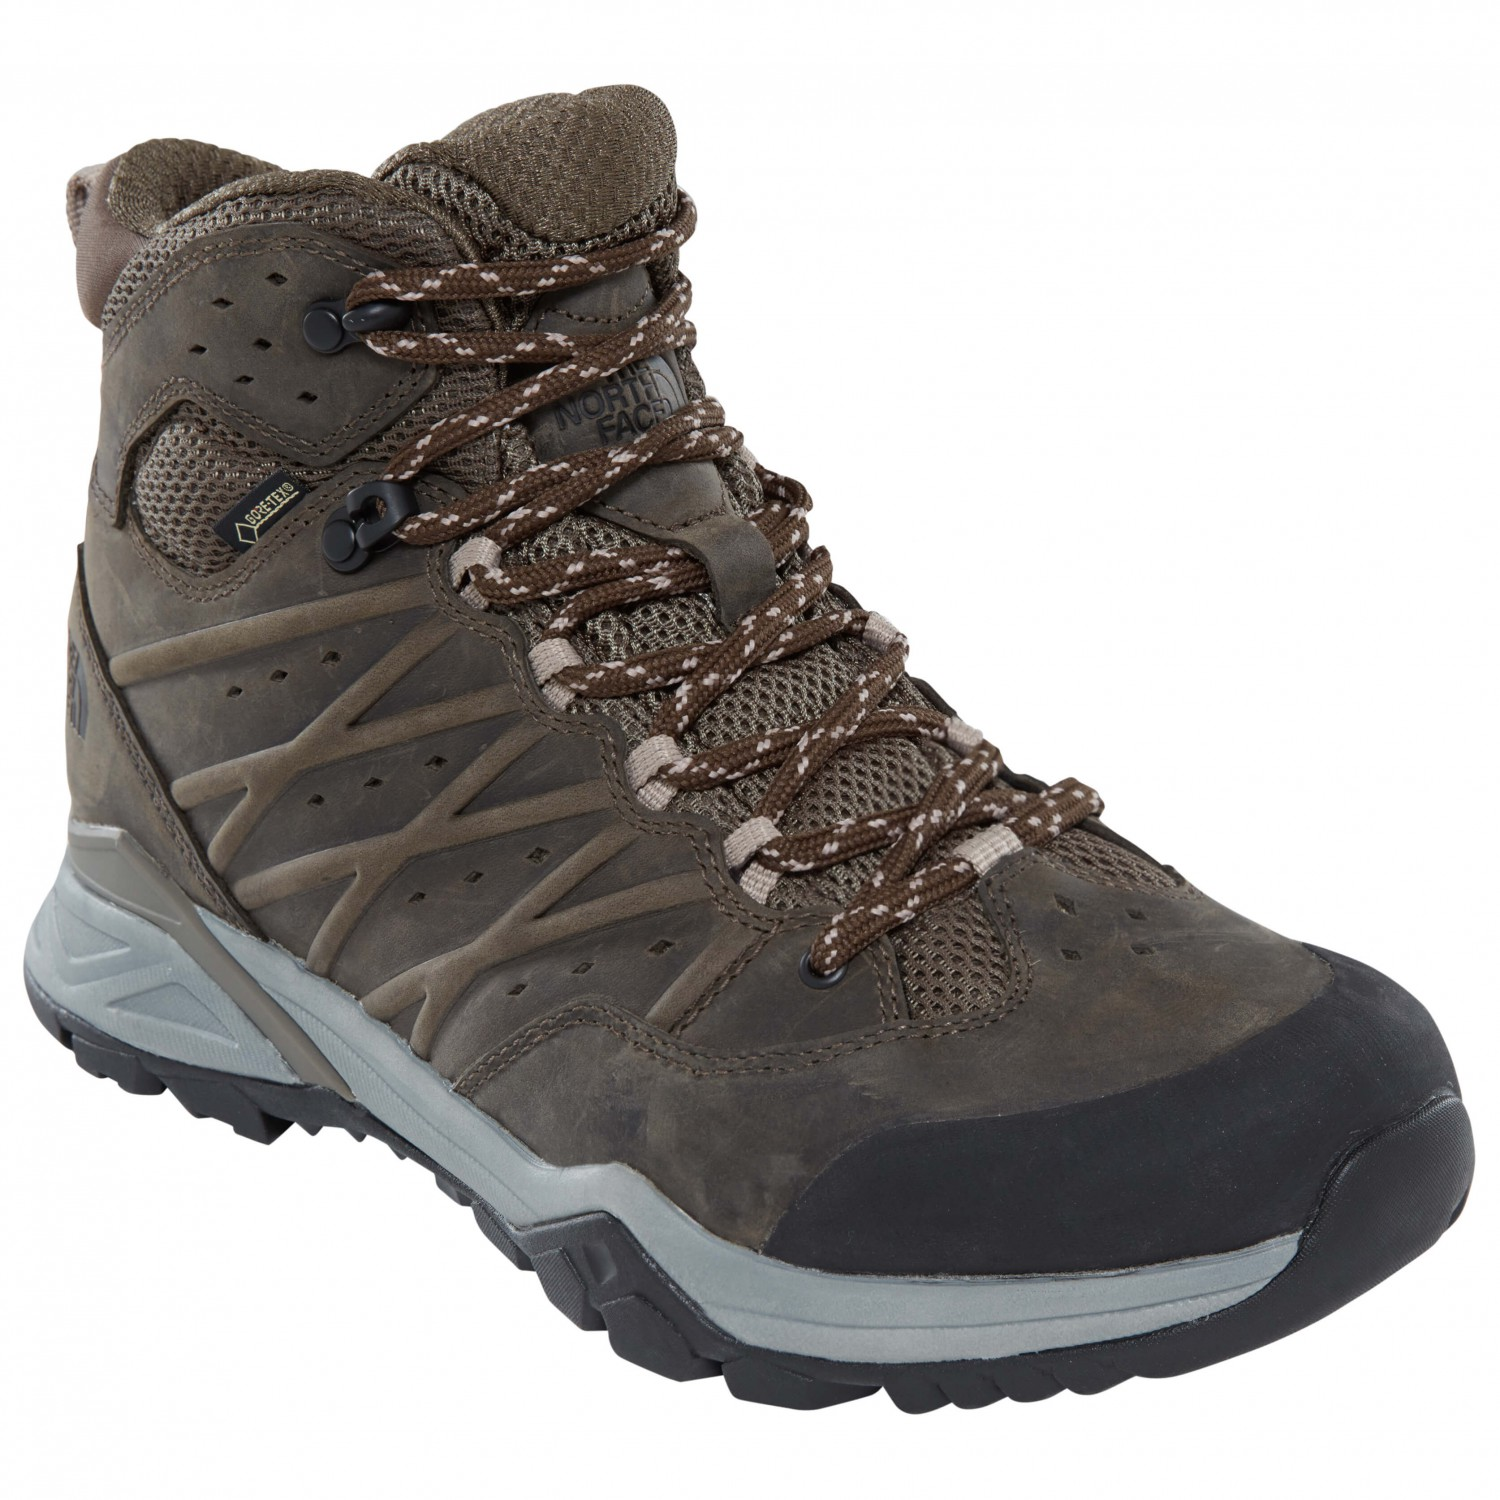 388485955 The North Face - Hedgehog Hike II Mid GTX - Walking boots - TNF Black /  Graphite Grey | 8,5 (US)